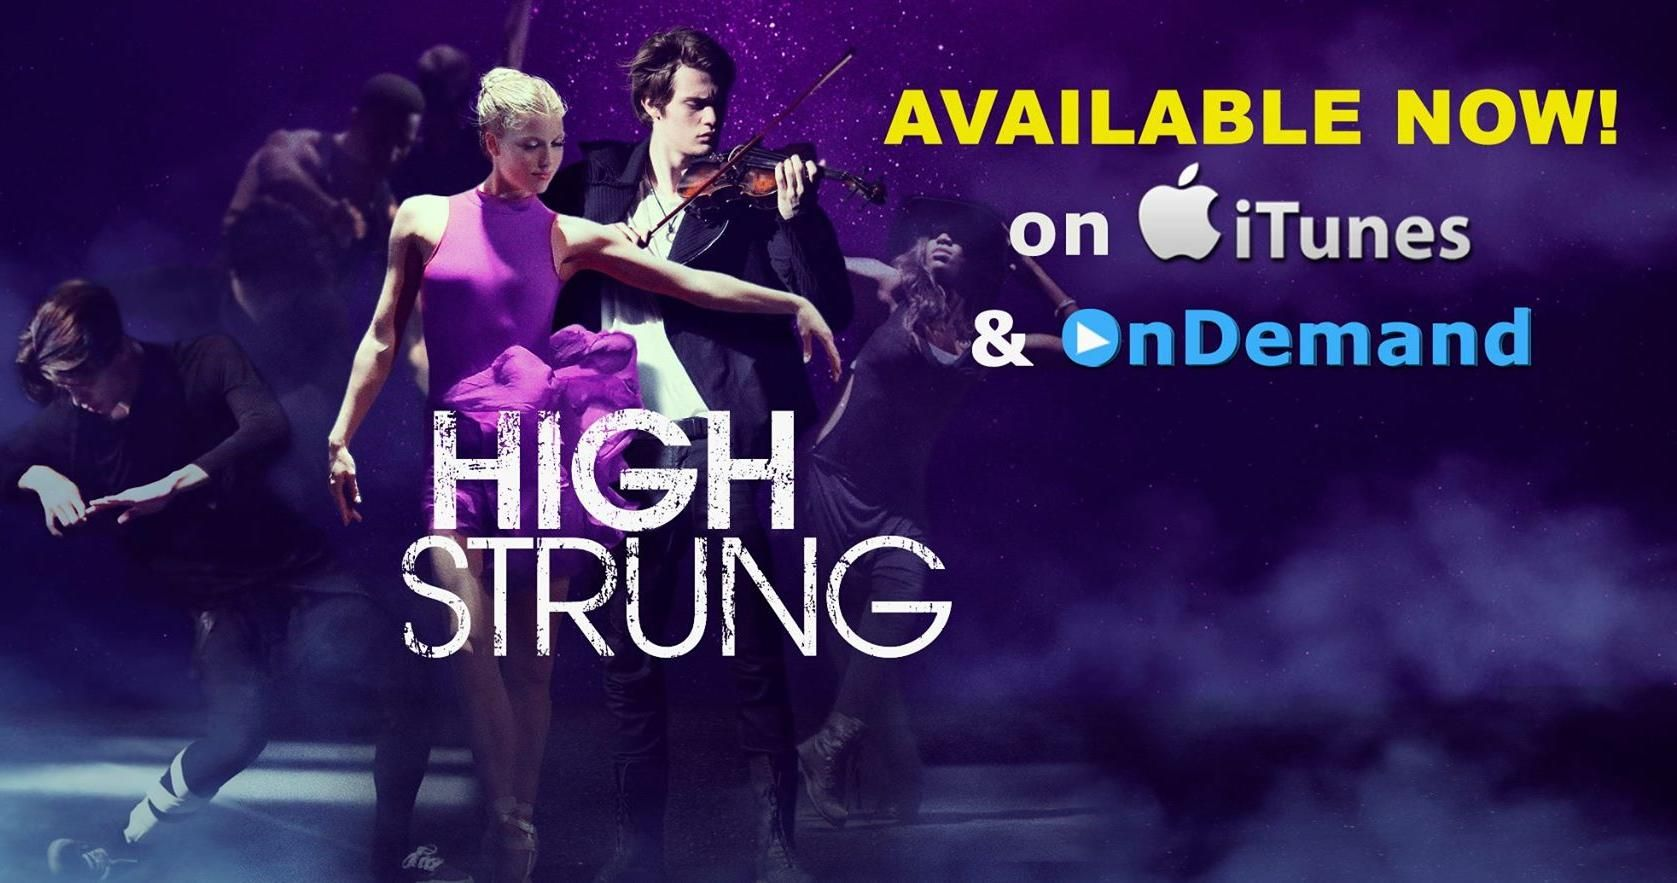 #HighStrungMovie is available NOW on #iTunesMovies and On Demand! #HSstreetcrewContest